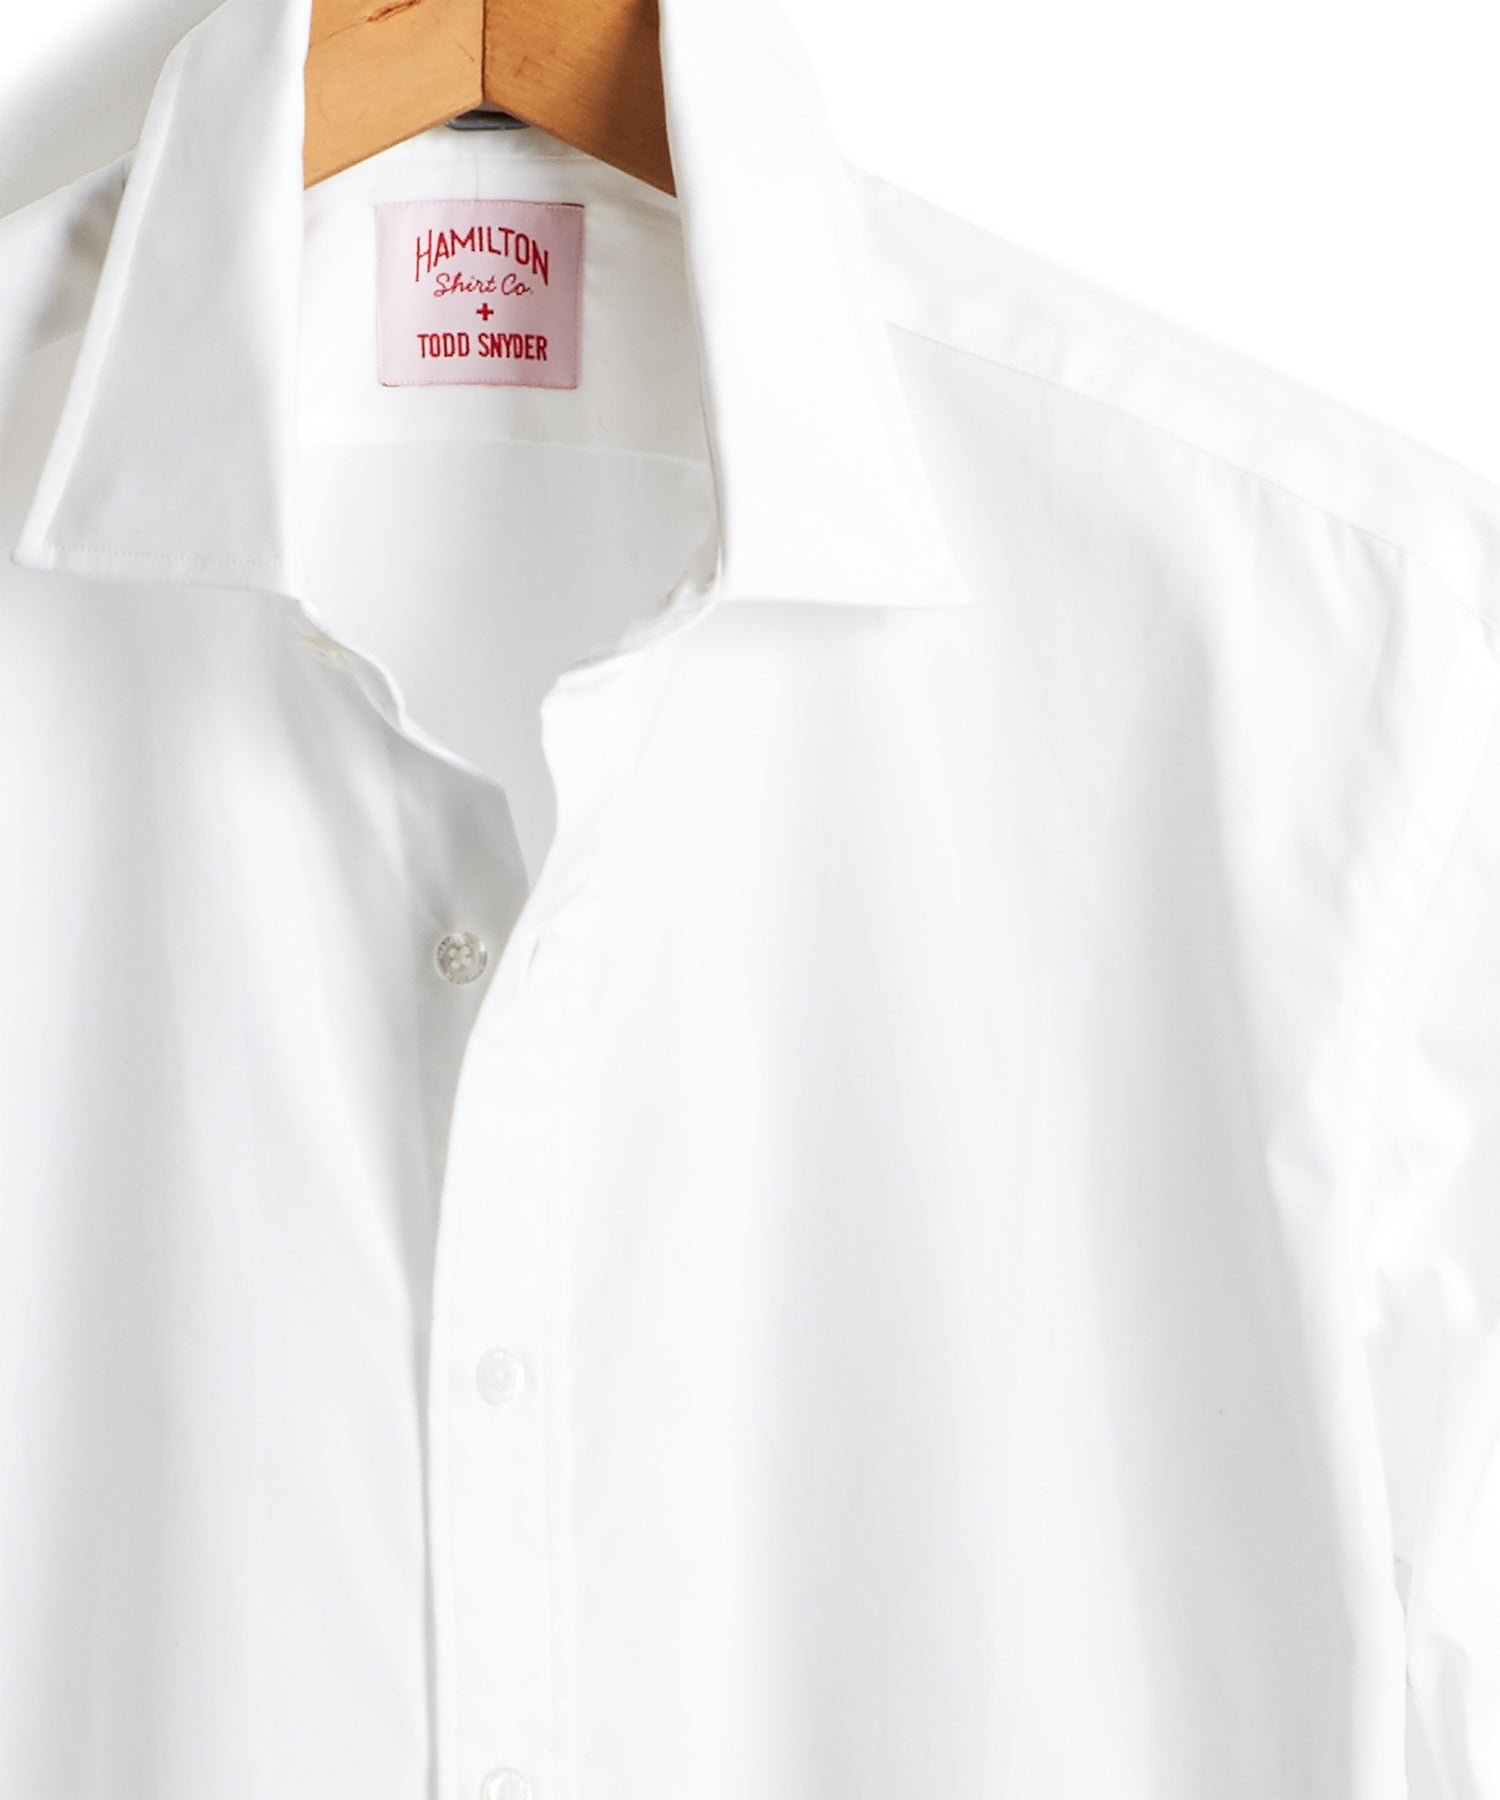 Made in the USA Hamilton + Todd Snyder Dress Shirt in White